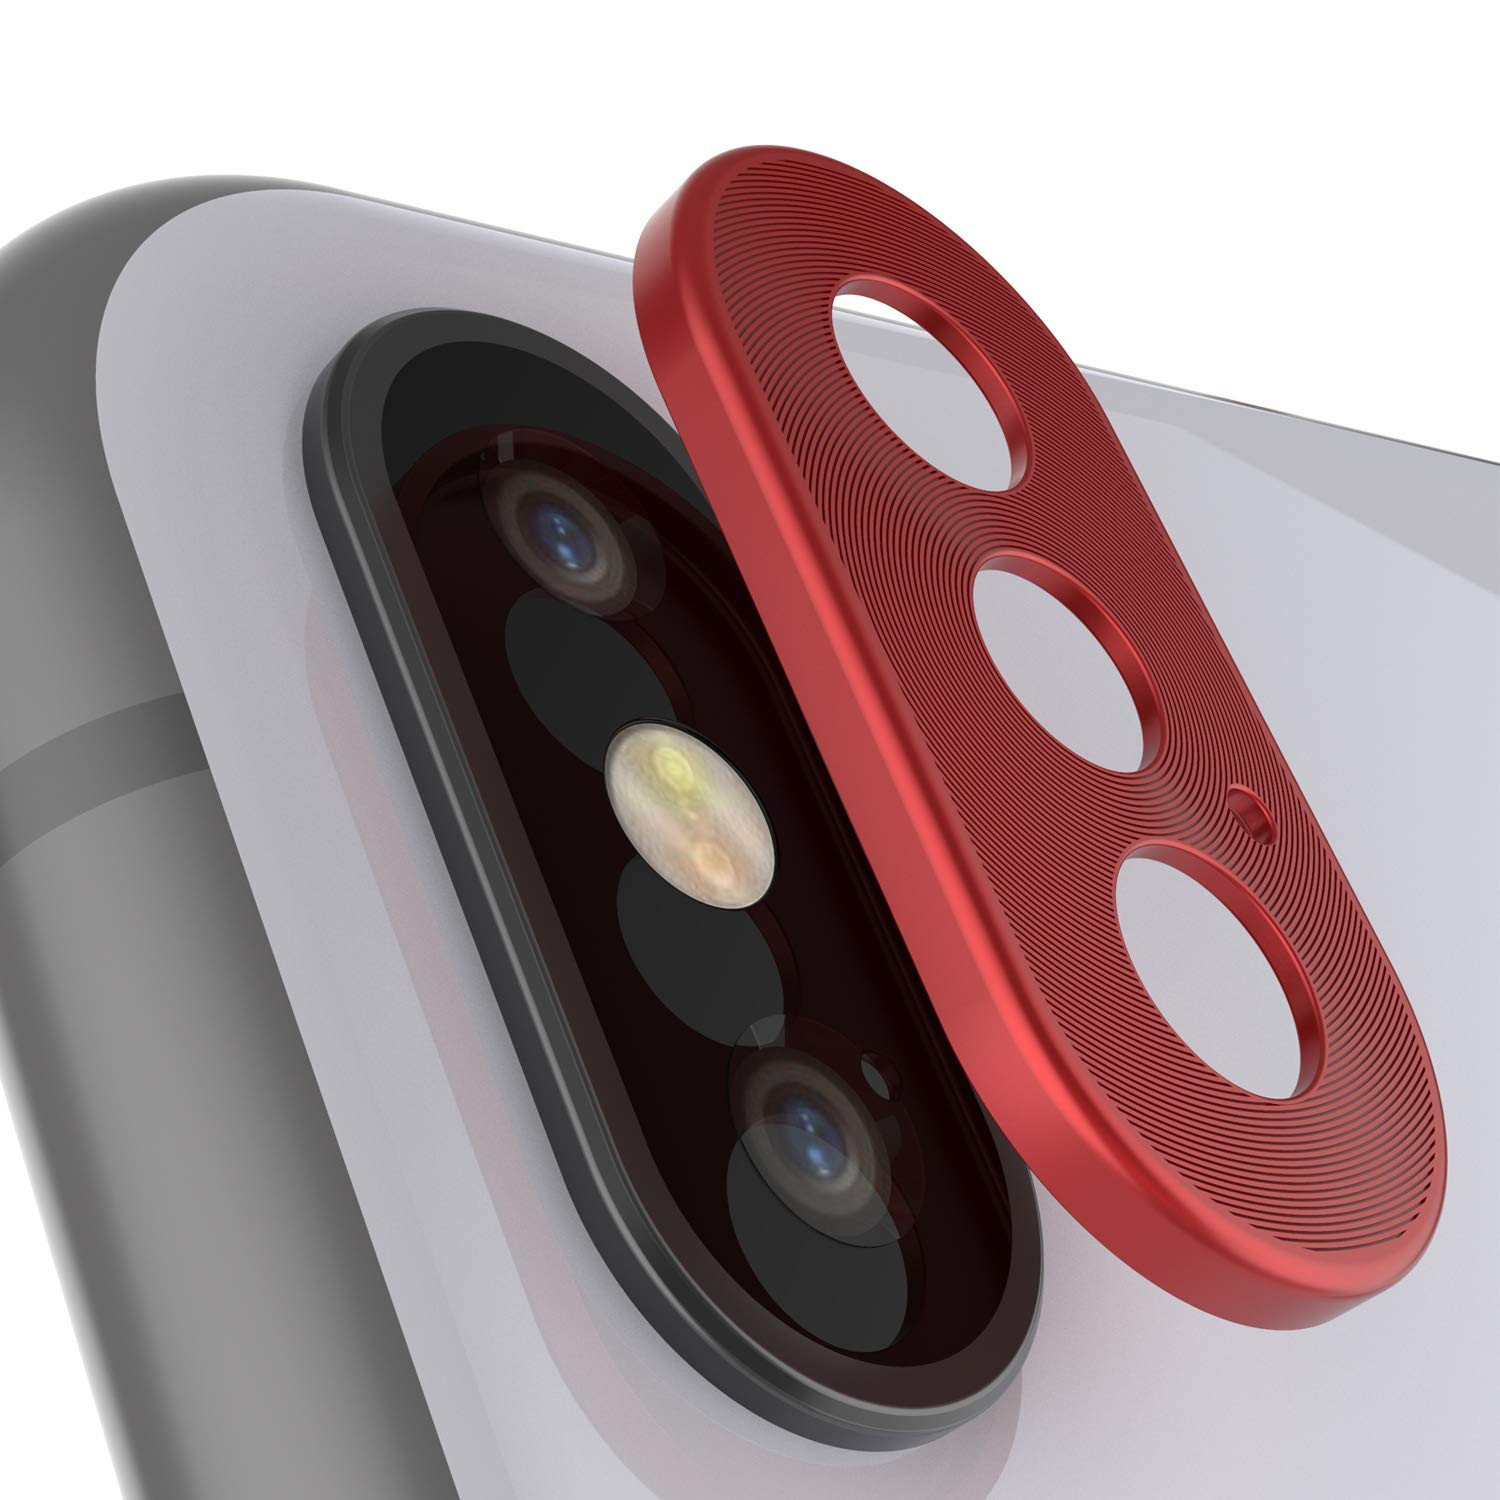 Punkcase iPhone XS Max Camera Protector Ring [Red]